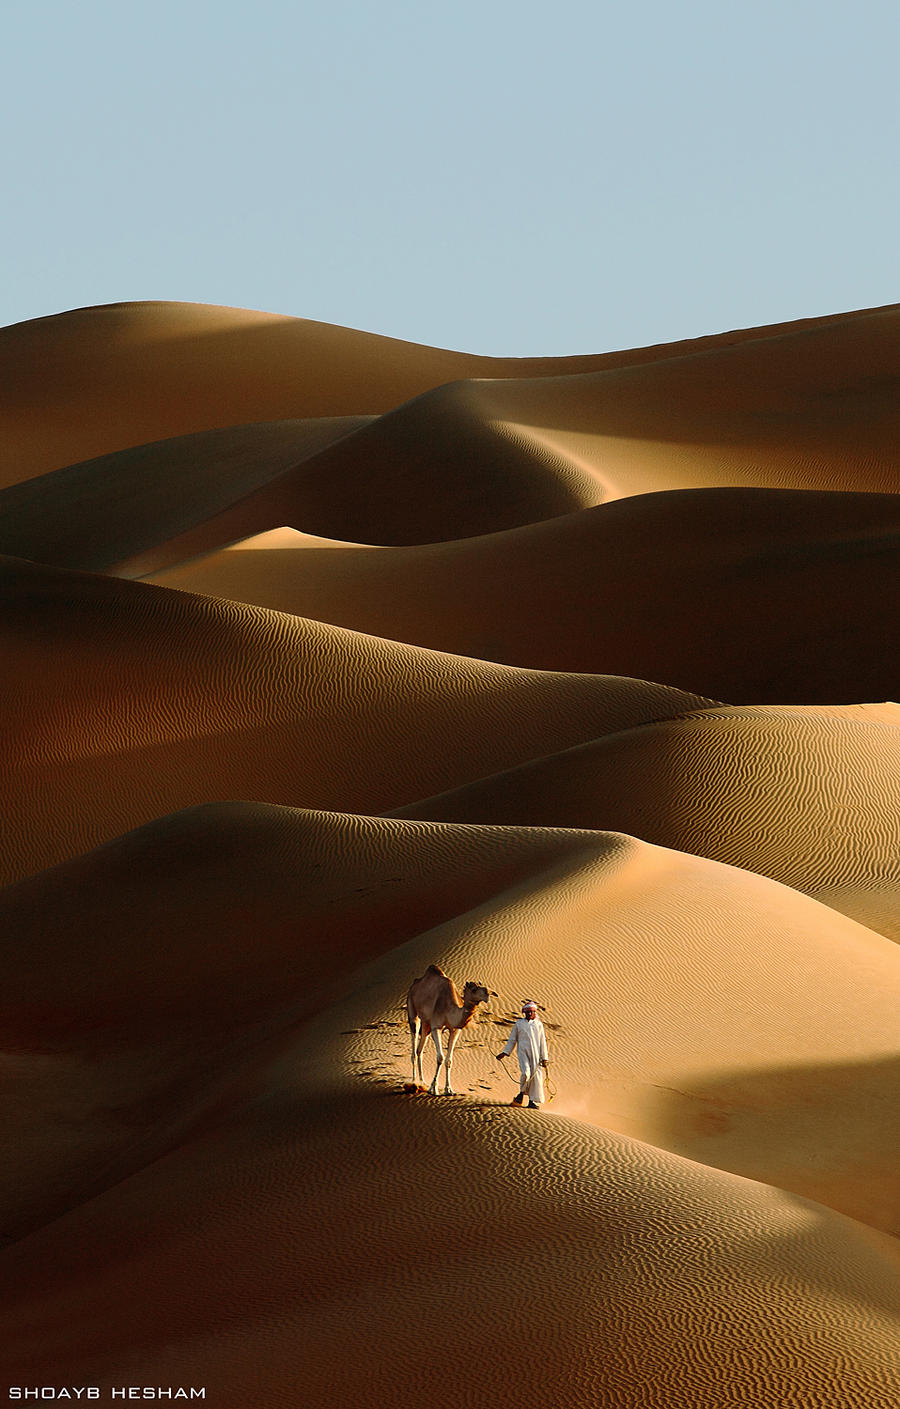 Desert Walk by Shoayb